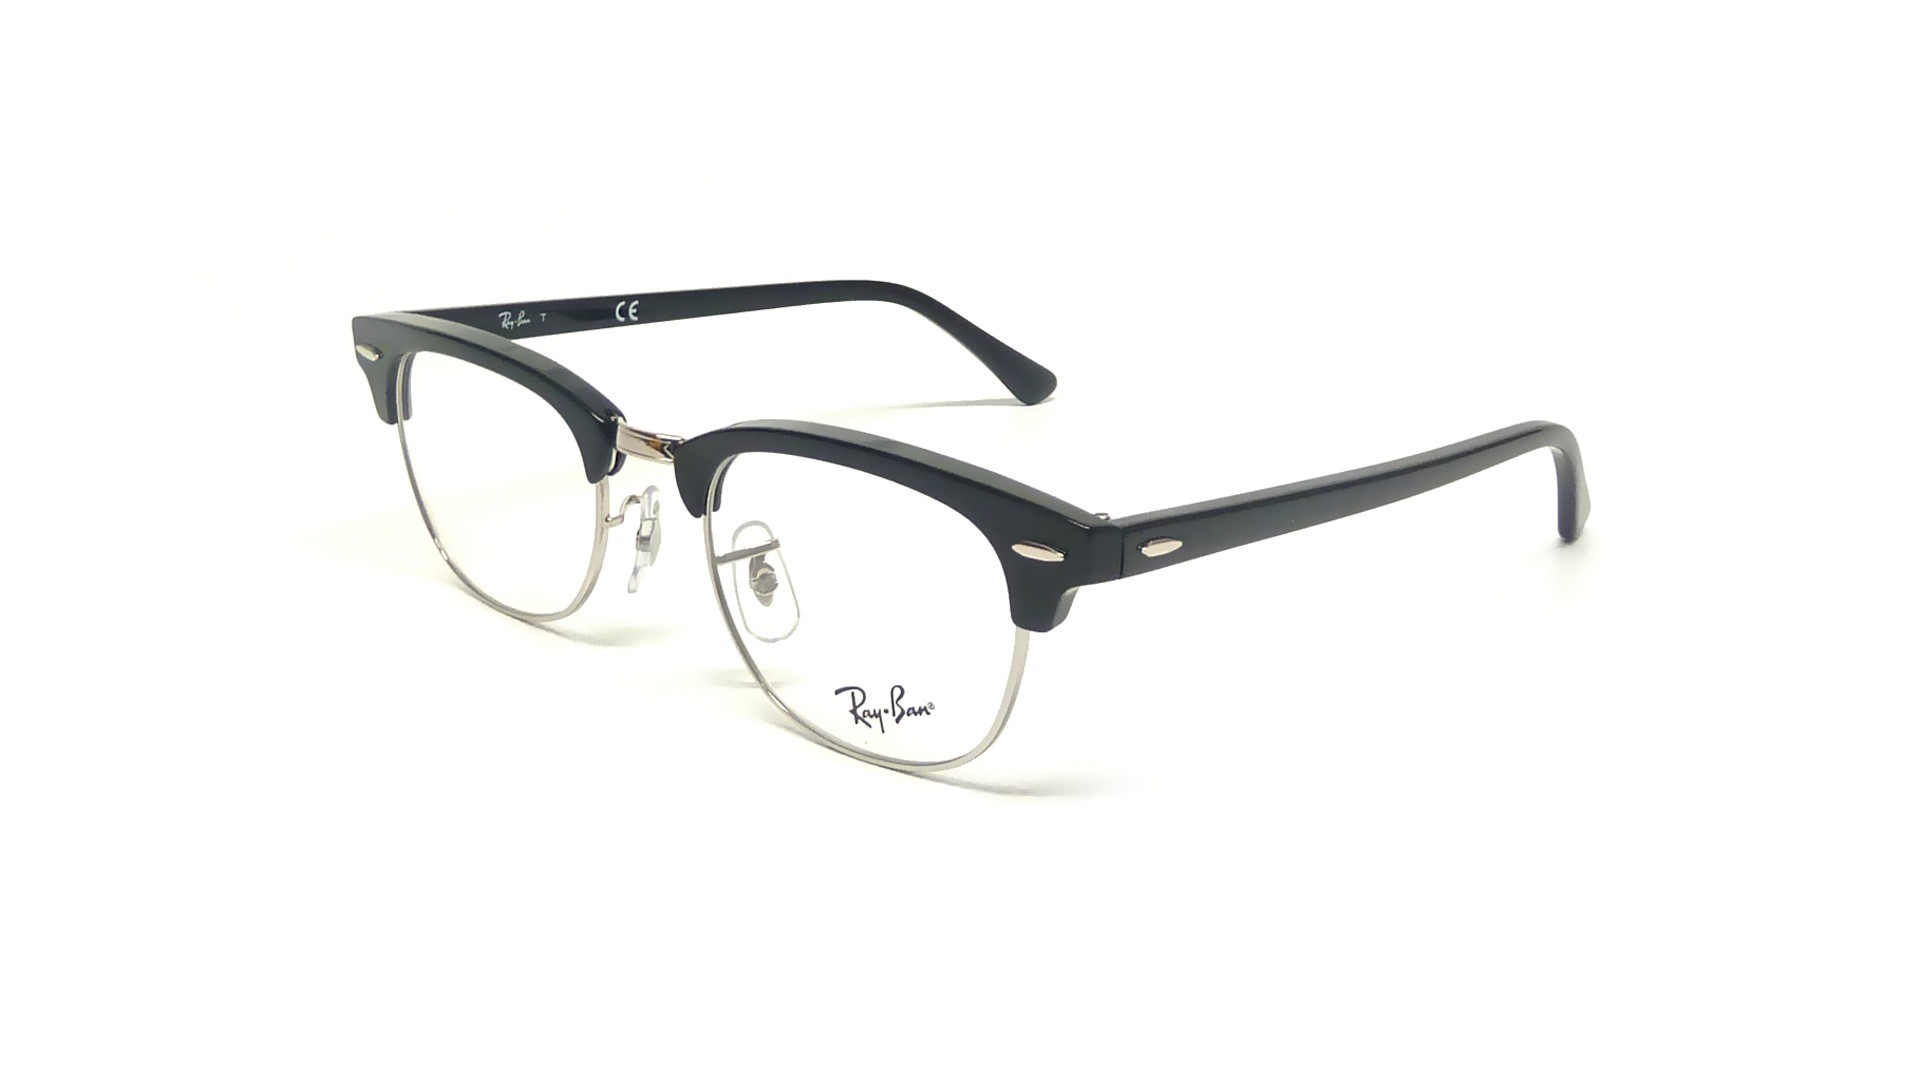 Ray Ban Clubmaster Glasses Frames : Eye glasses Ray Ban RX RB 5154 Clubmaster 2000 Black